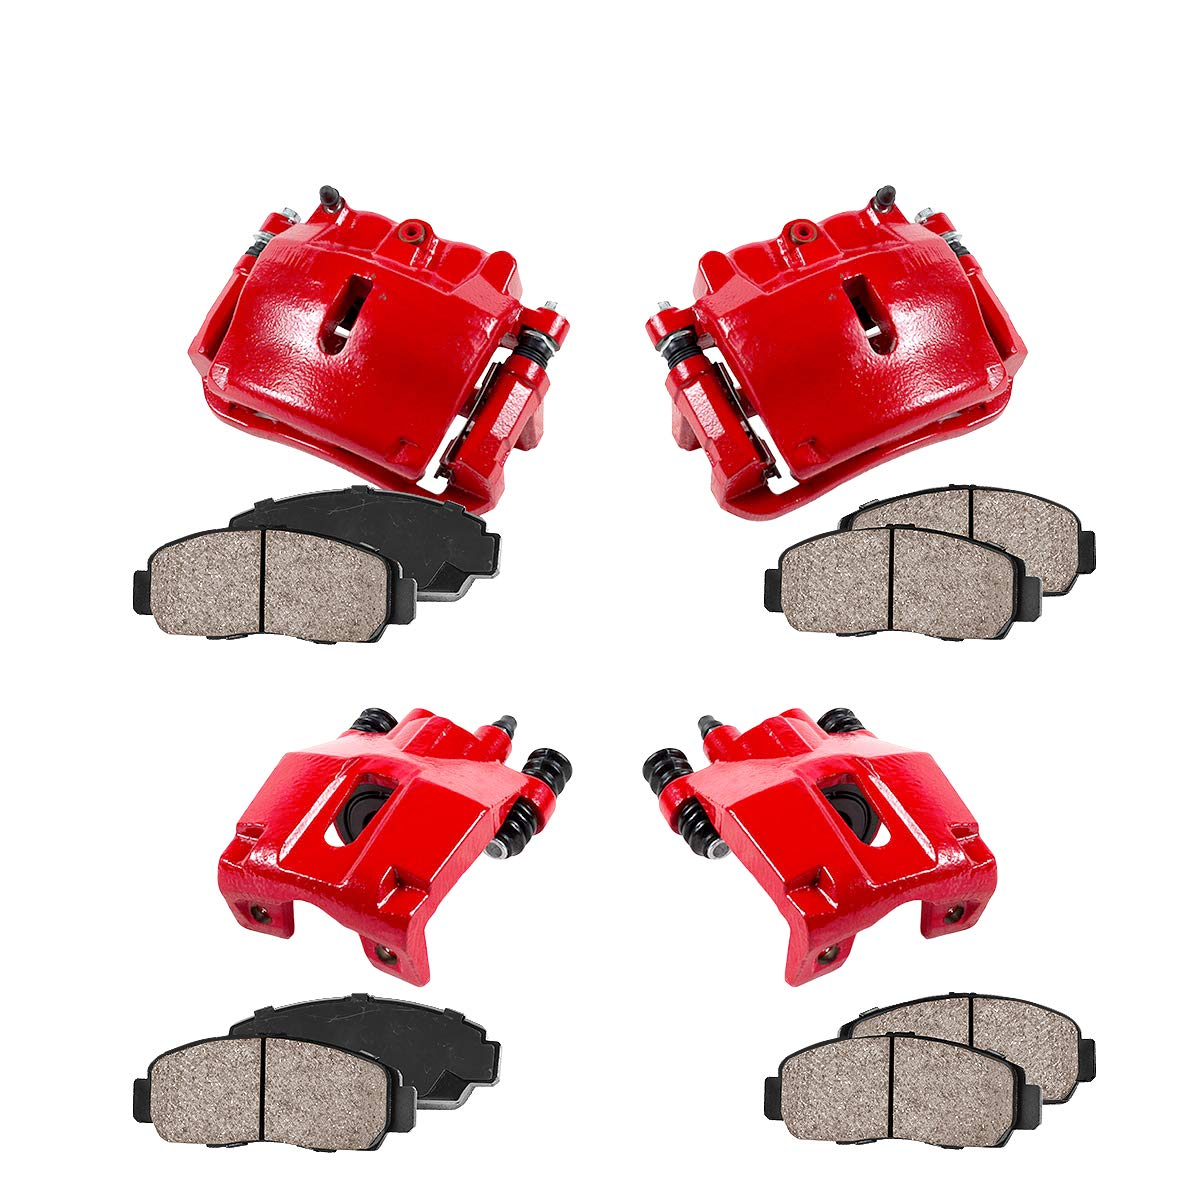 CCK01412 FRONT + REAR [ 4 ] Performance Grade Loaded Powder Coated Red Calipers + Ceramic Brake Pads Kit Callahan Brake Parts